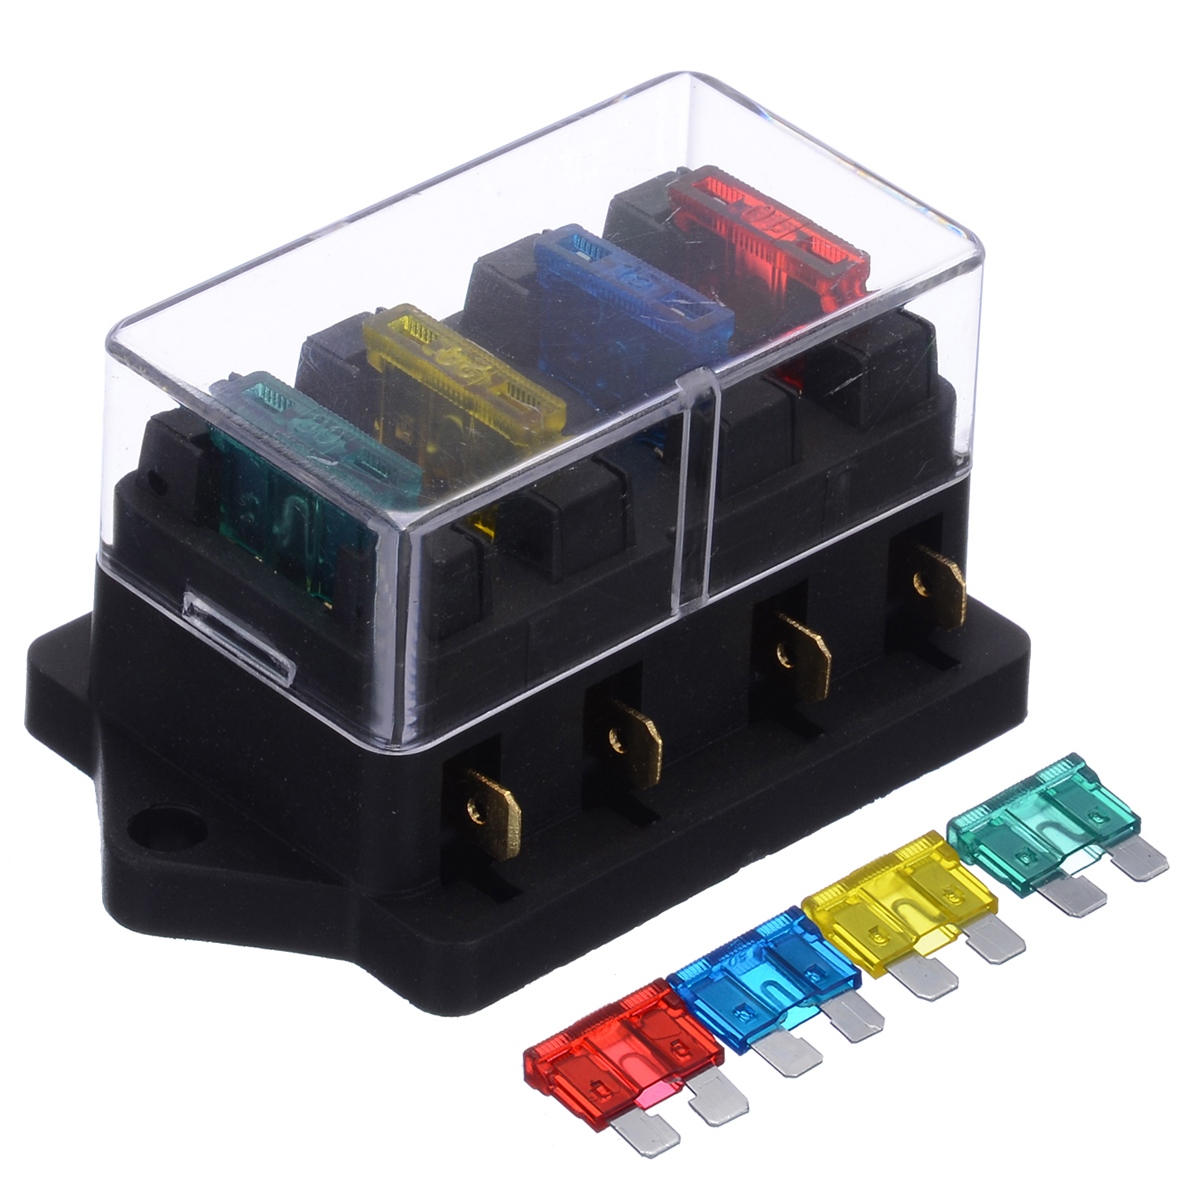 Universal 12V 4 Way Fuse Box Block Fuse Holder Box Car Vehicle Circuit Automotive  Blade Car Fuse Accessory Tool with Fuses Fuses  - AliExpressAliExpress